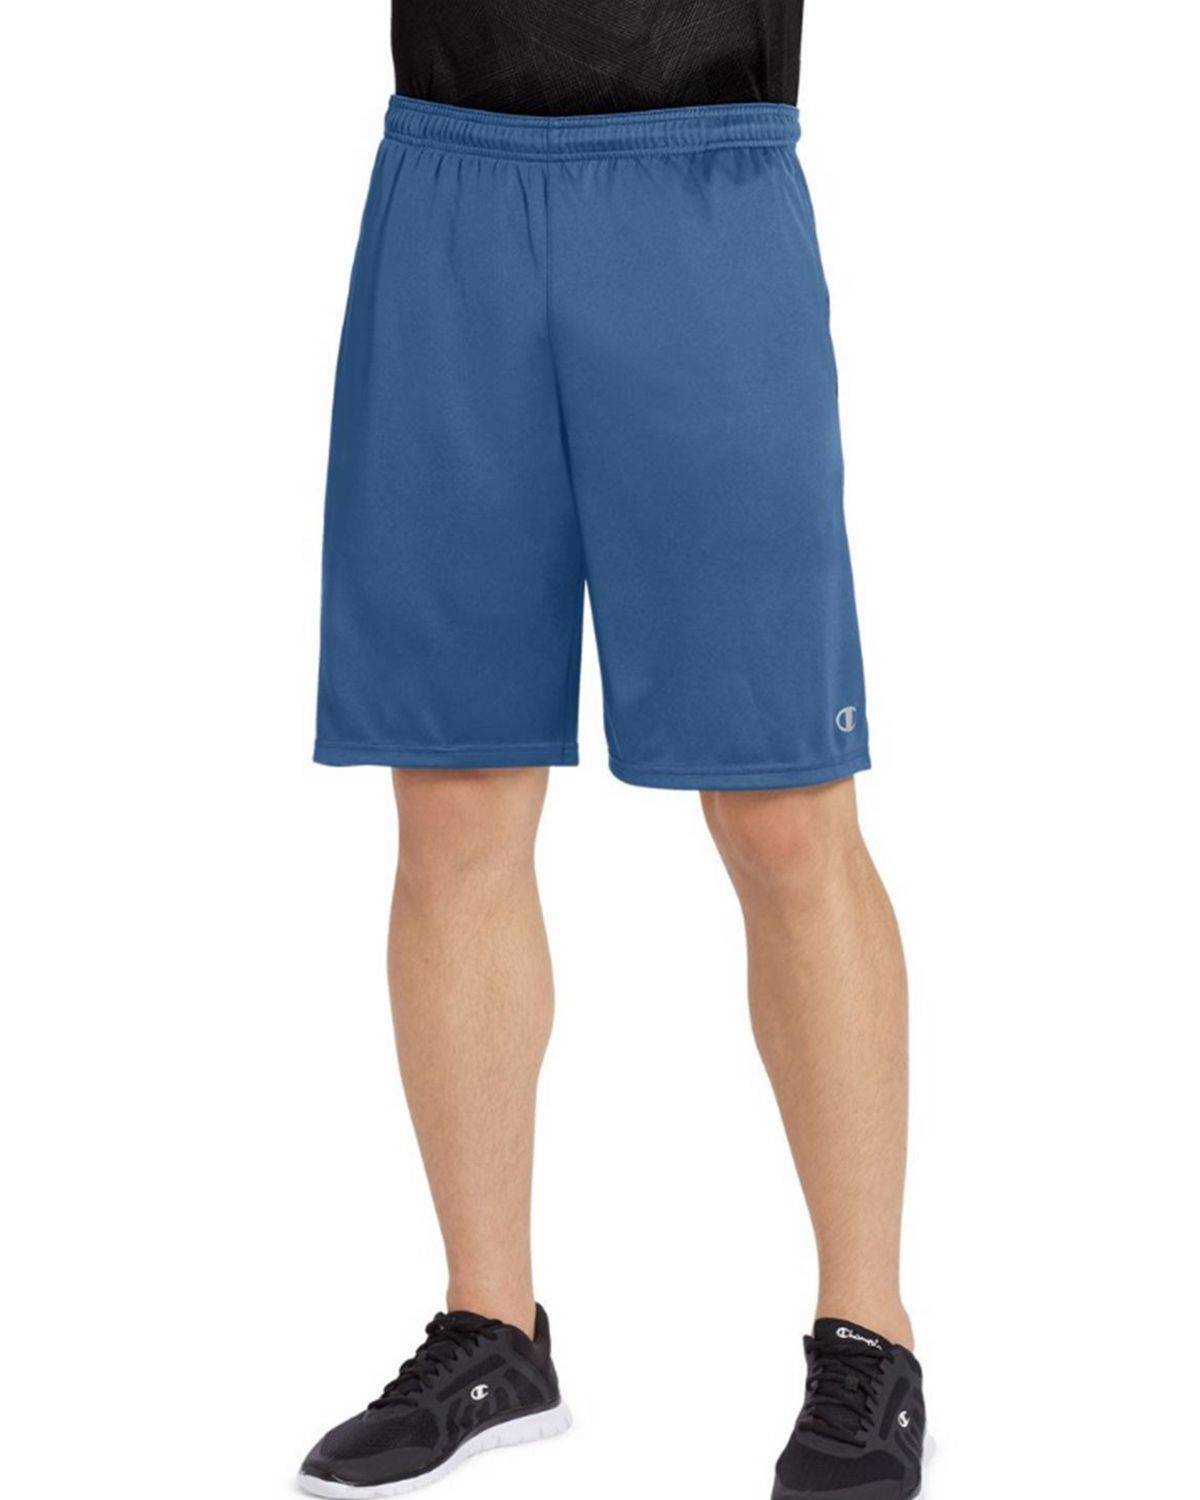 Champion 88125 Vapor Mens Shorts - Seabottom Blue/Navy - L 88125